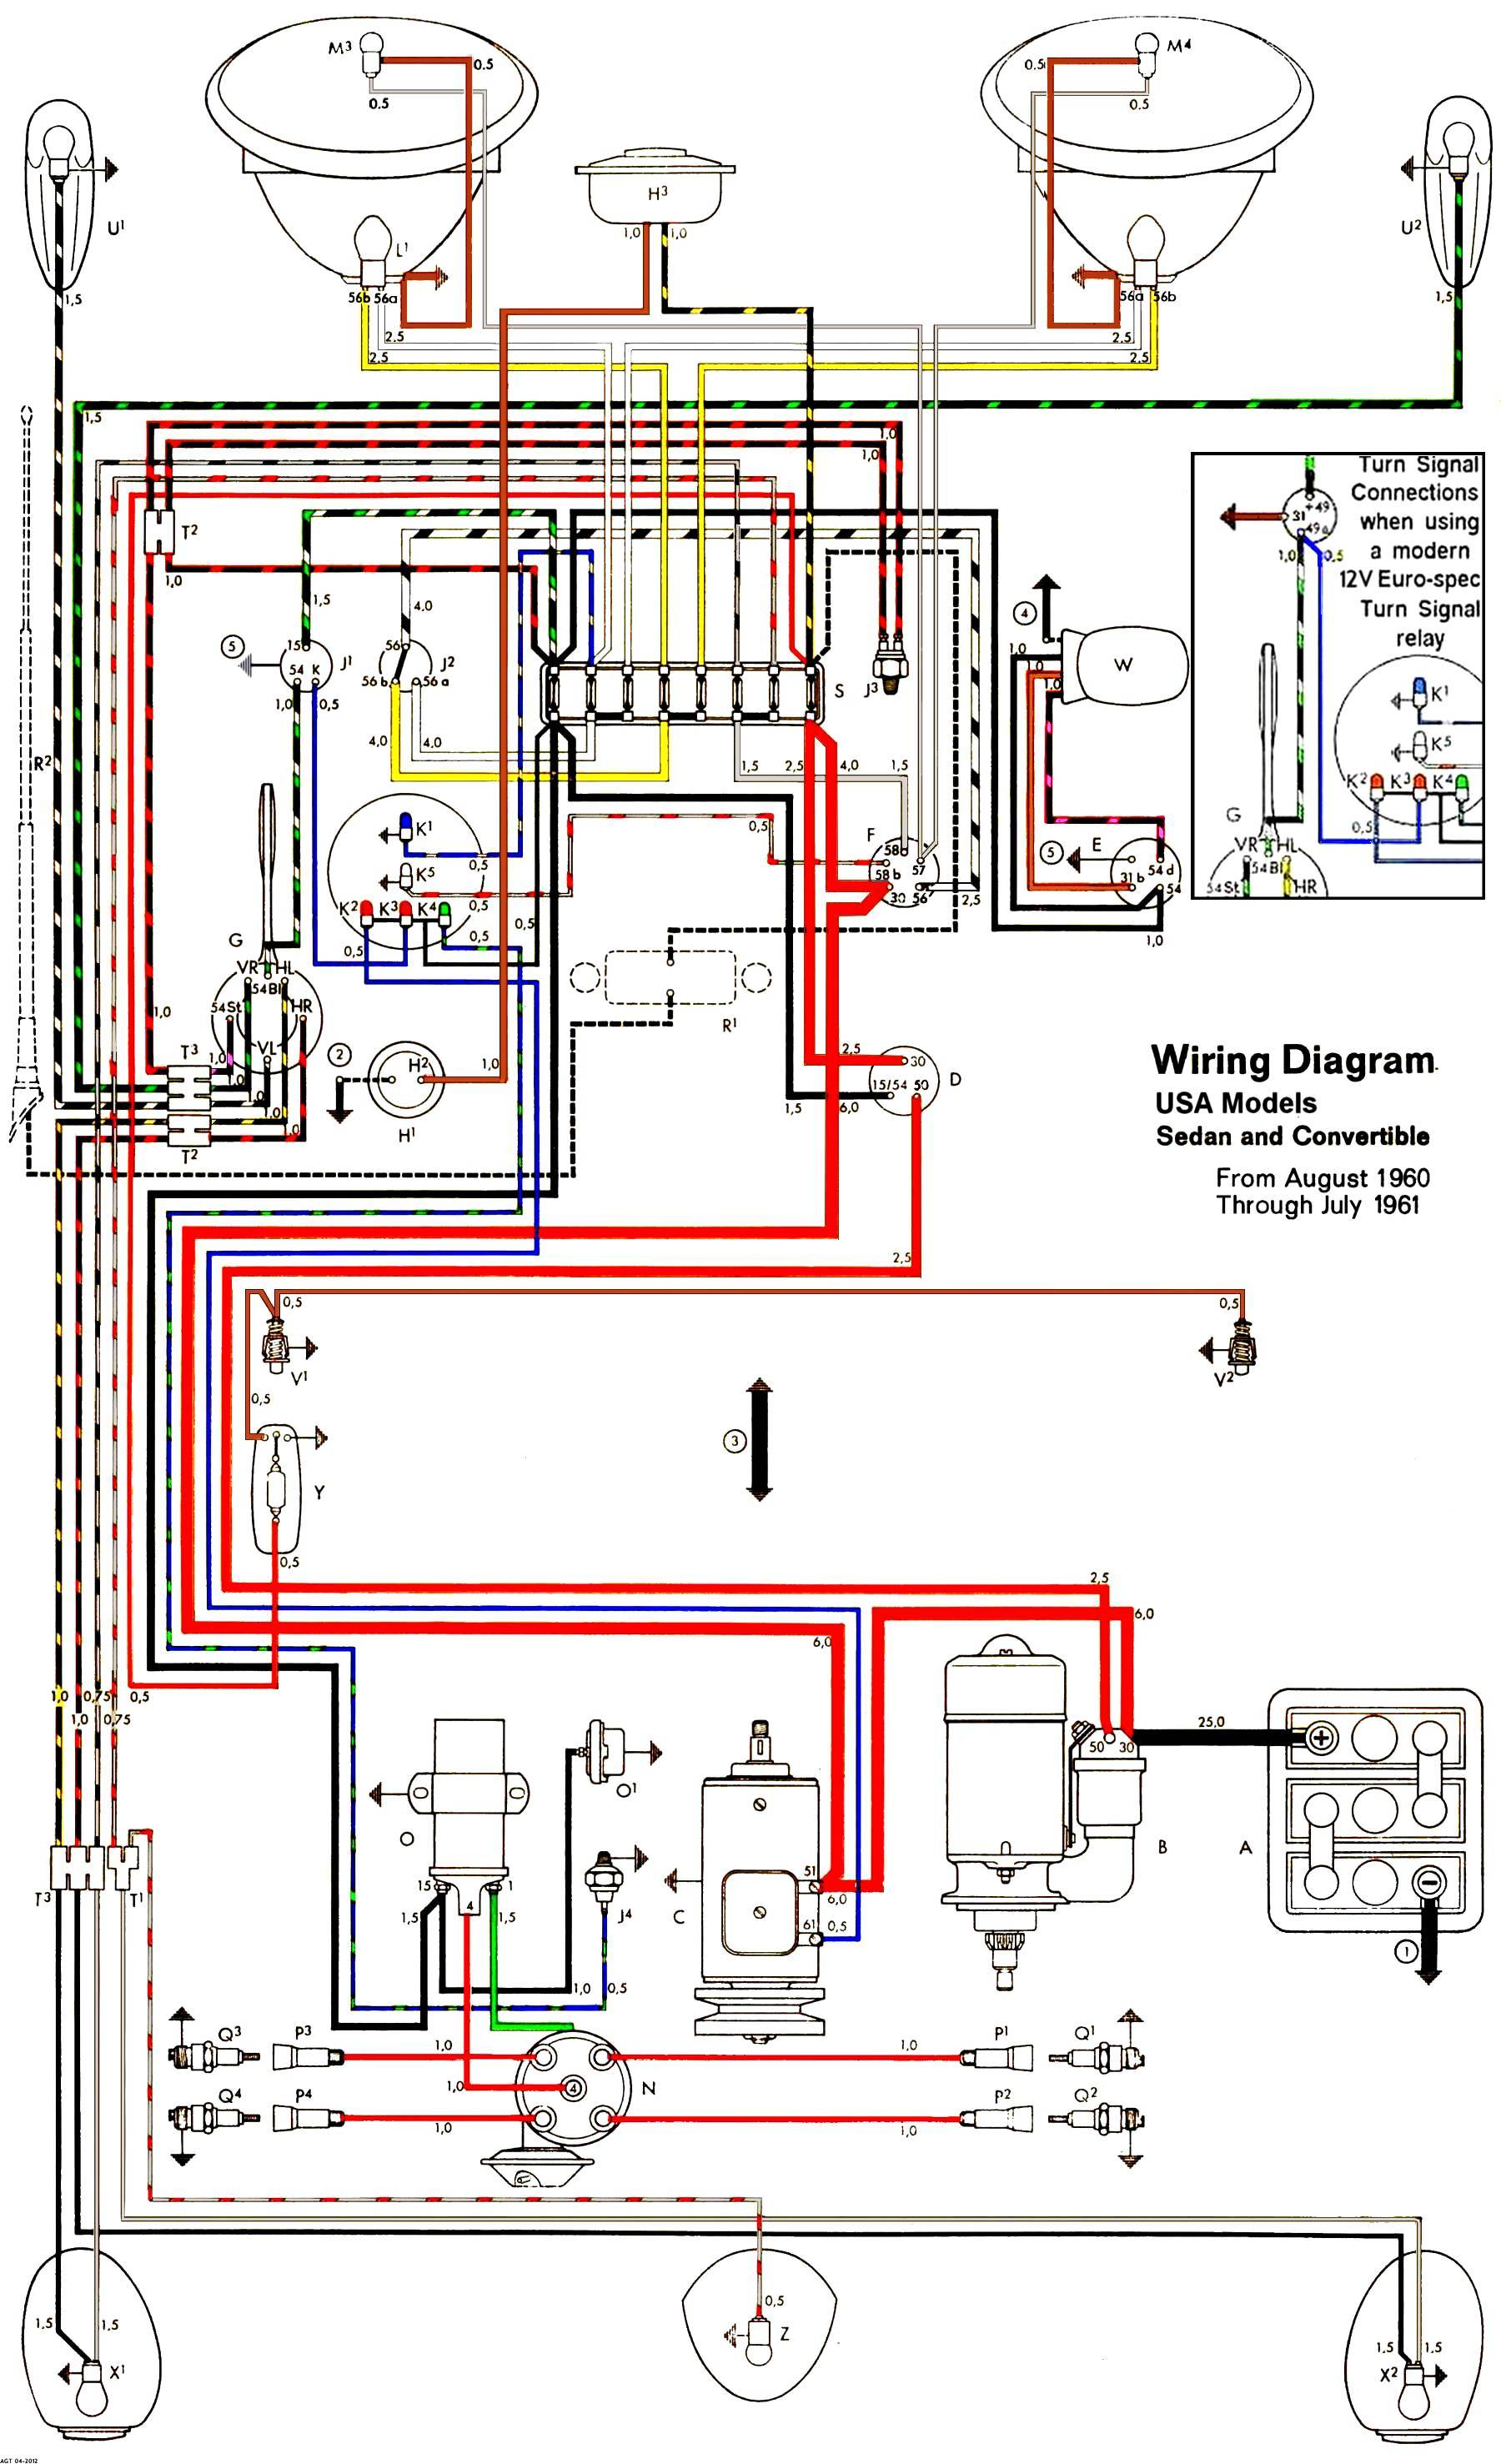 Thesamba type 1 wiring diagrams asfbconference2016 Images